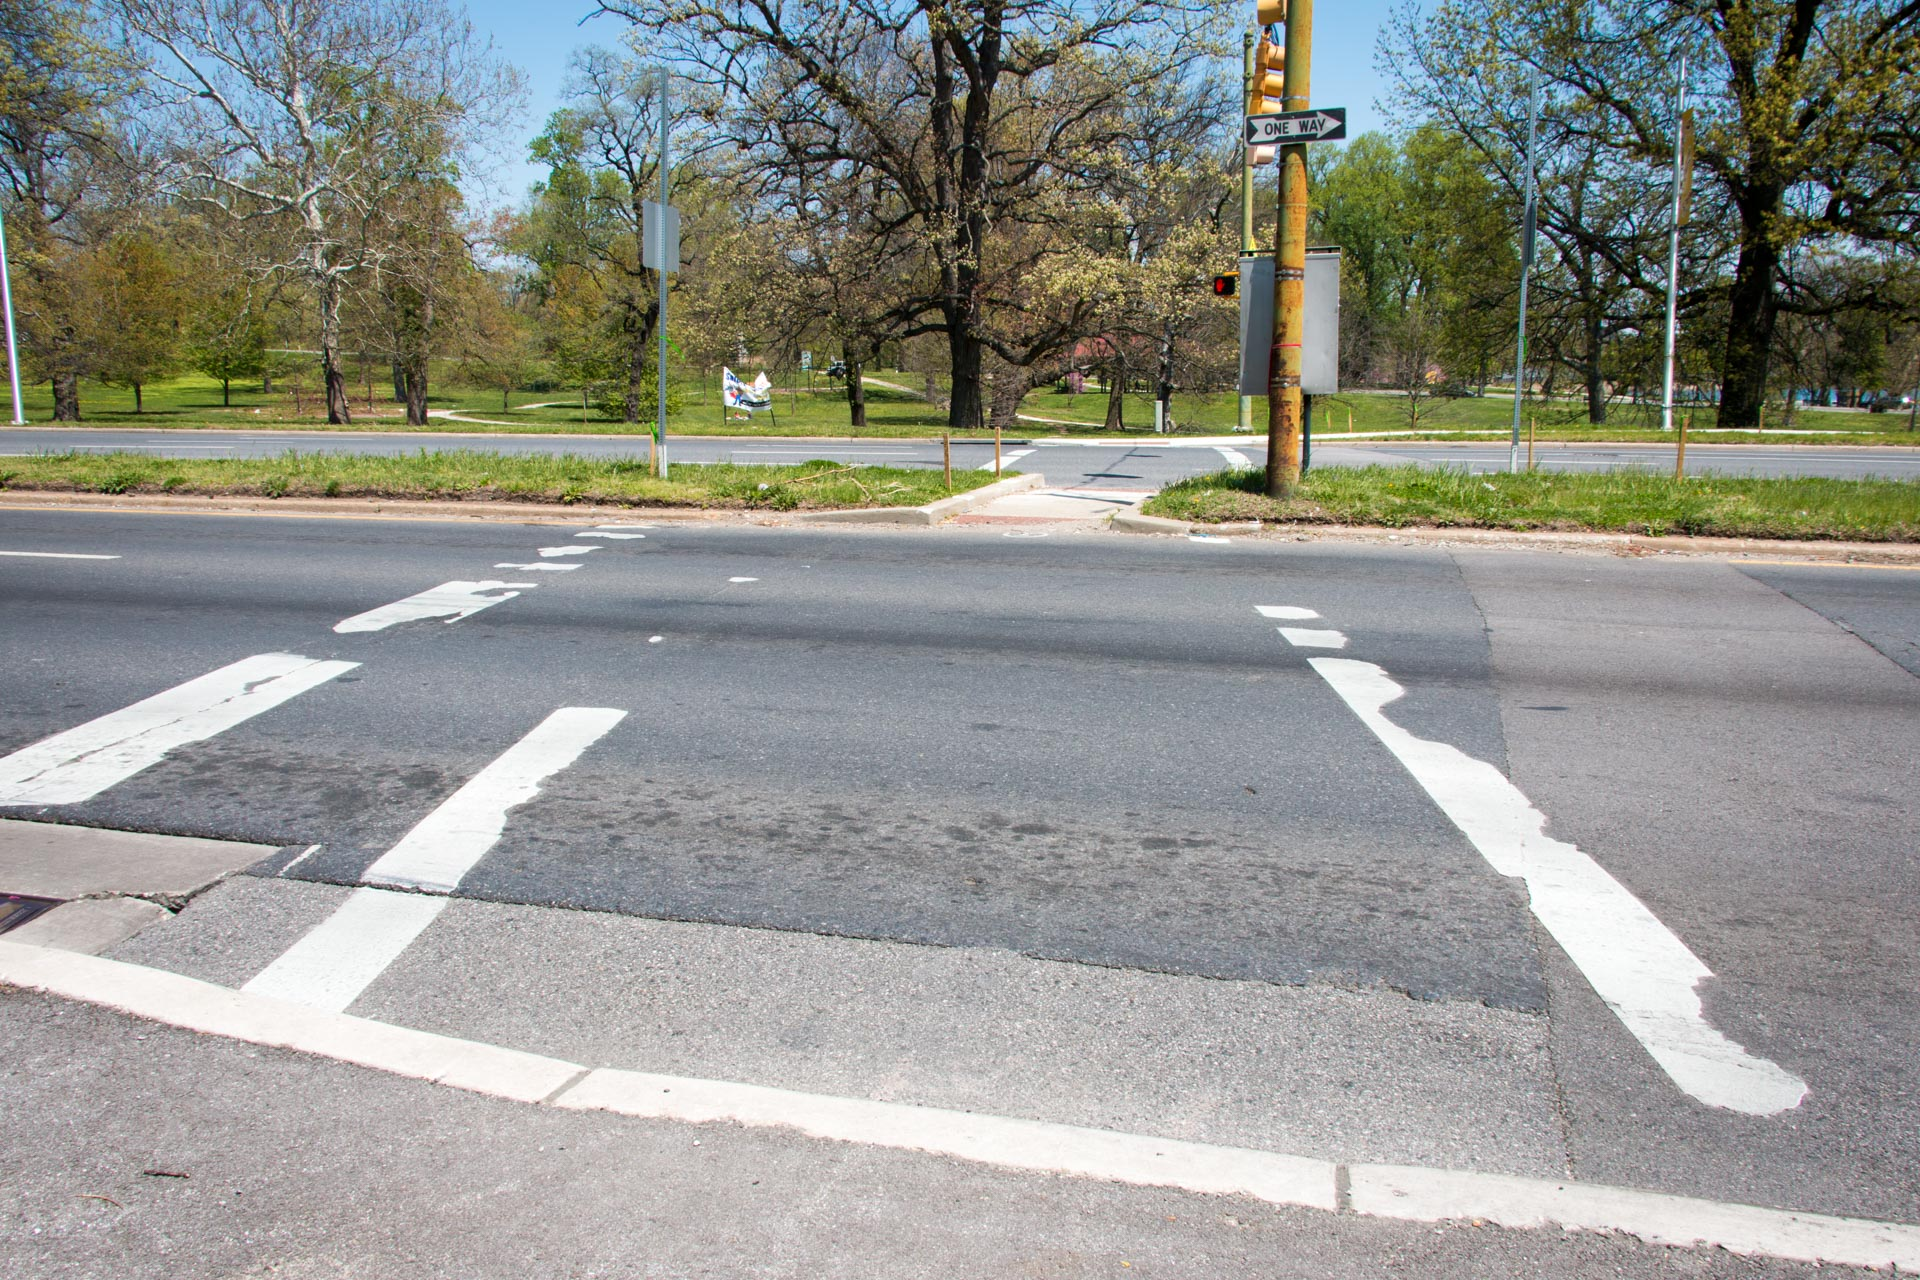 180501 Druid Hill Park pedestrian access conditions 10 Auchentoroly & Fulton broken crosswalk